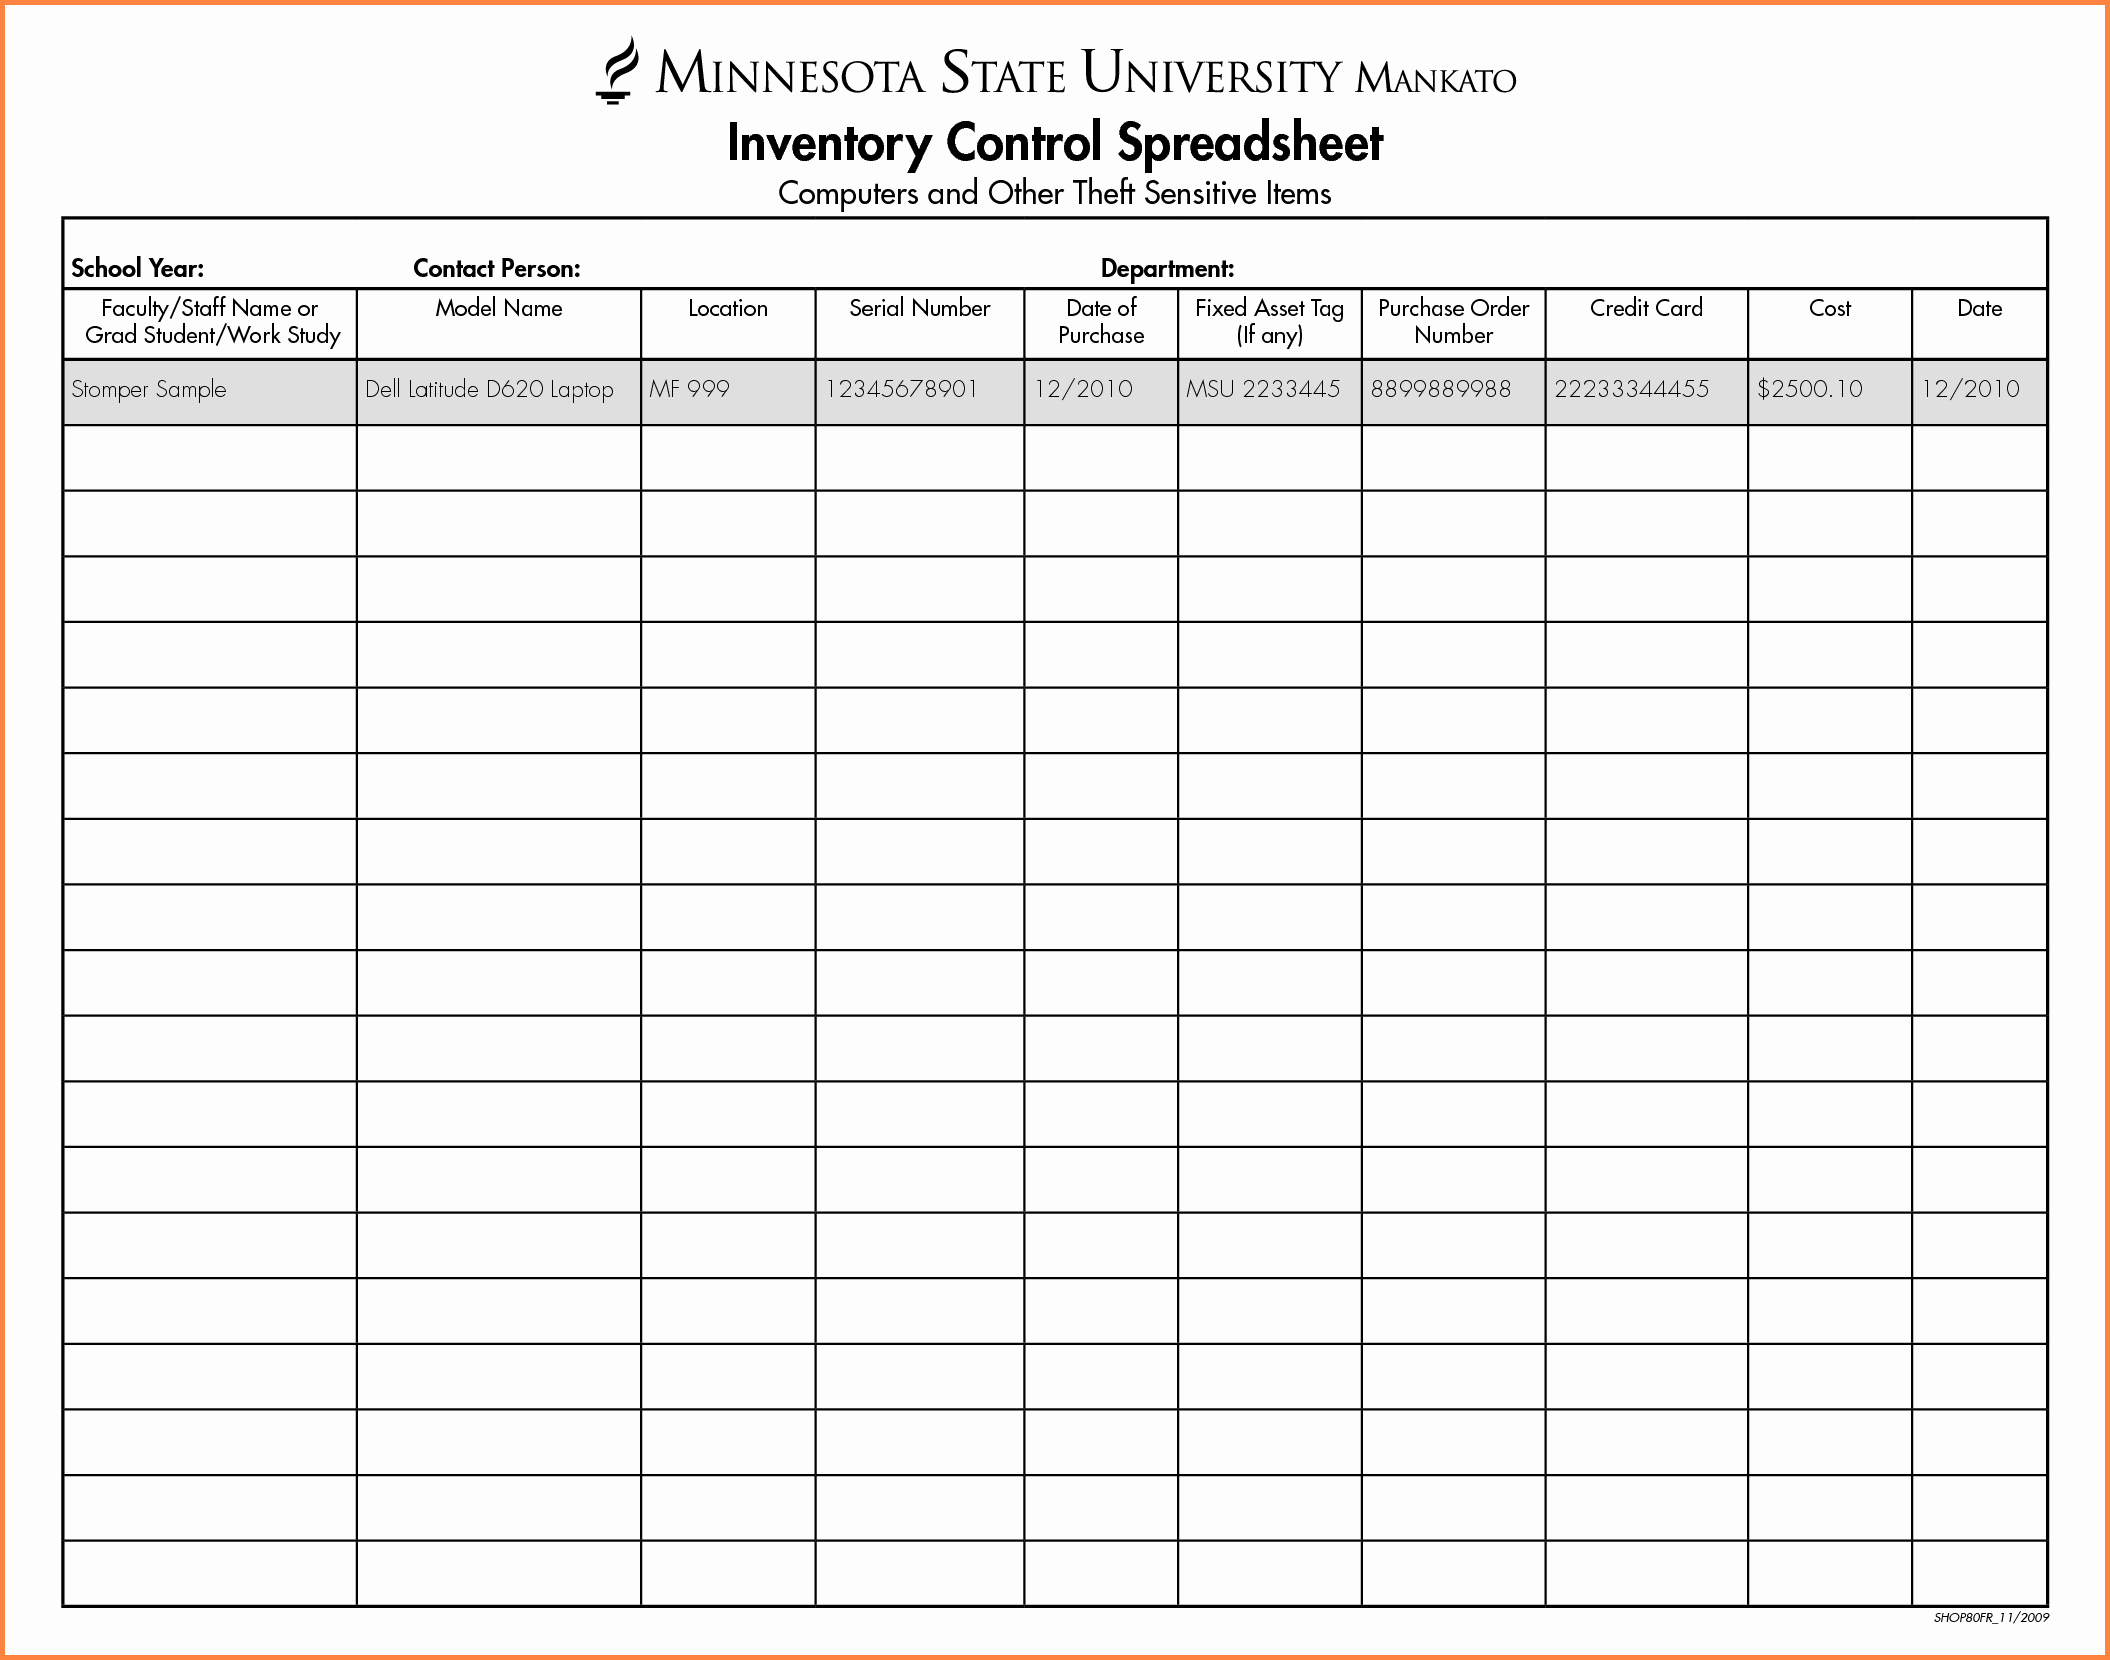 Inventory Sheet Template Excel Best Of 5 Inventory Control Spreadsheet